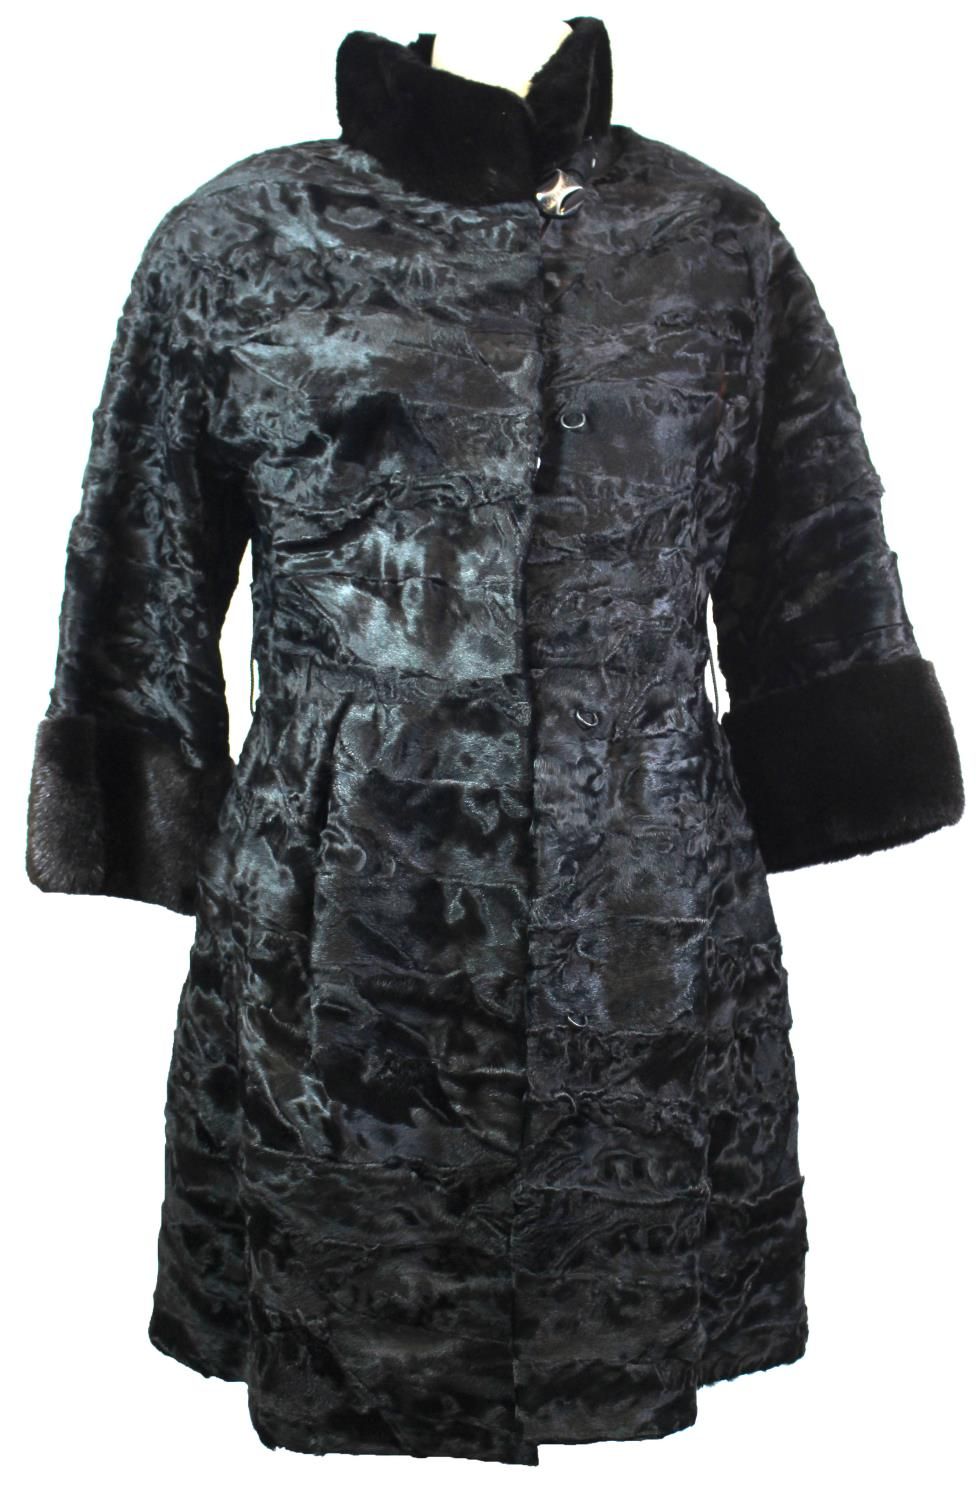 Lot 377 - MALA MATI, BLACK FUR COAT With hook and eye attachments, three quarter sleeves, fur trimmed